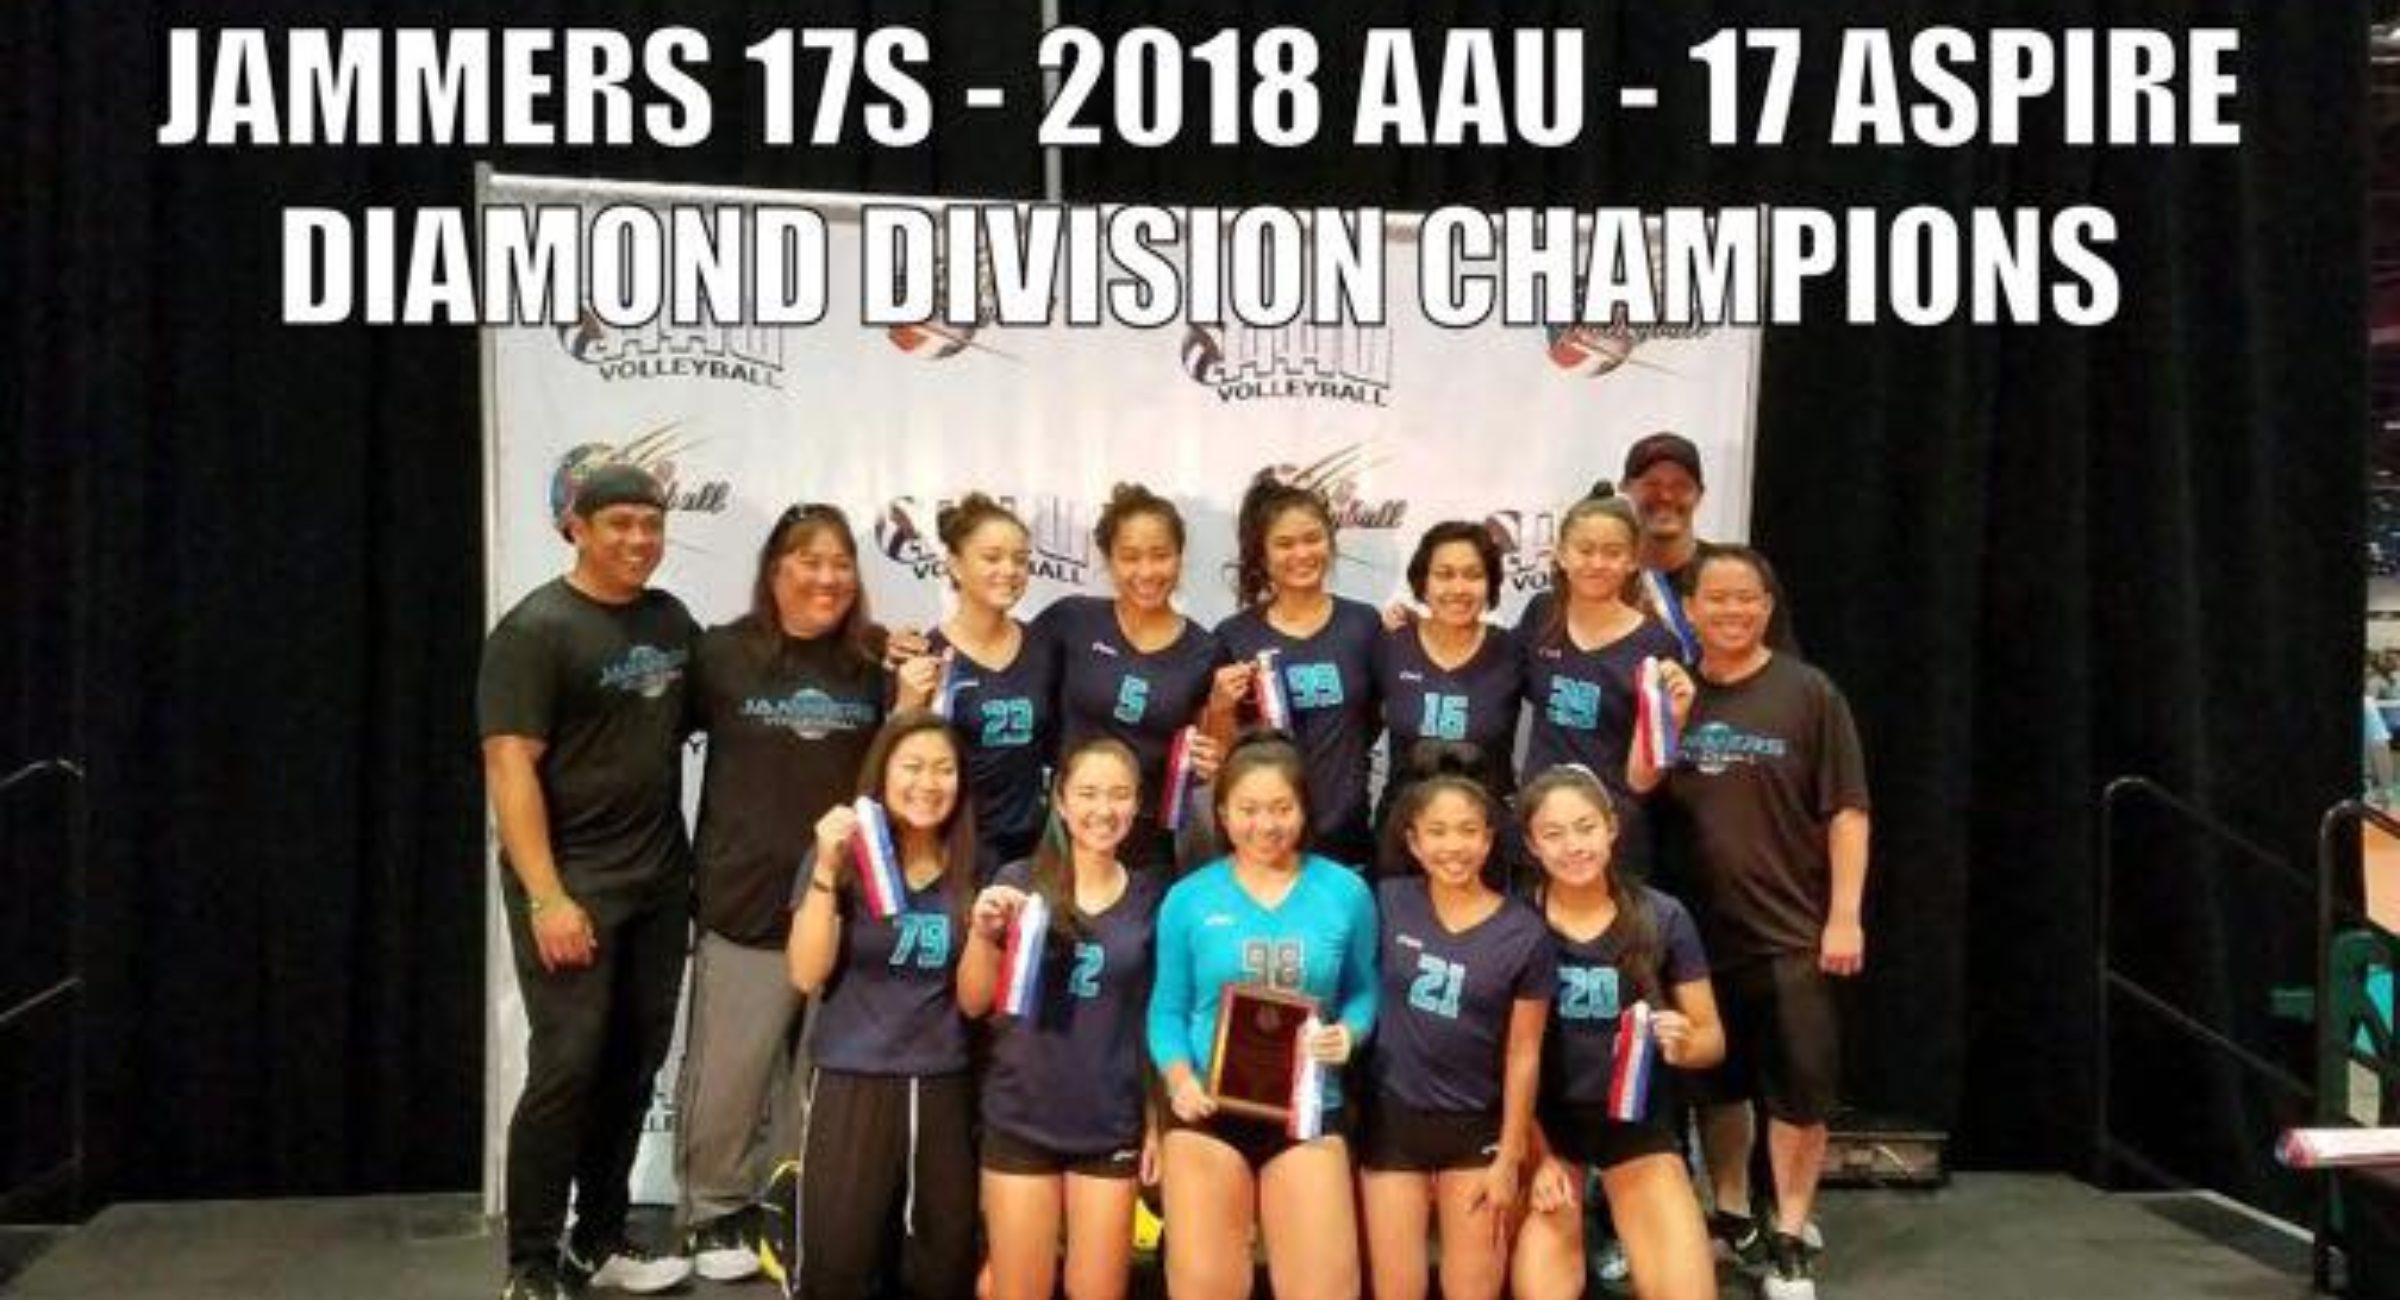 Jammers Volleyball Club Hawaii